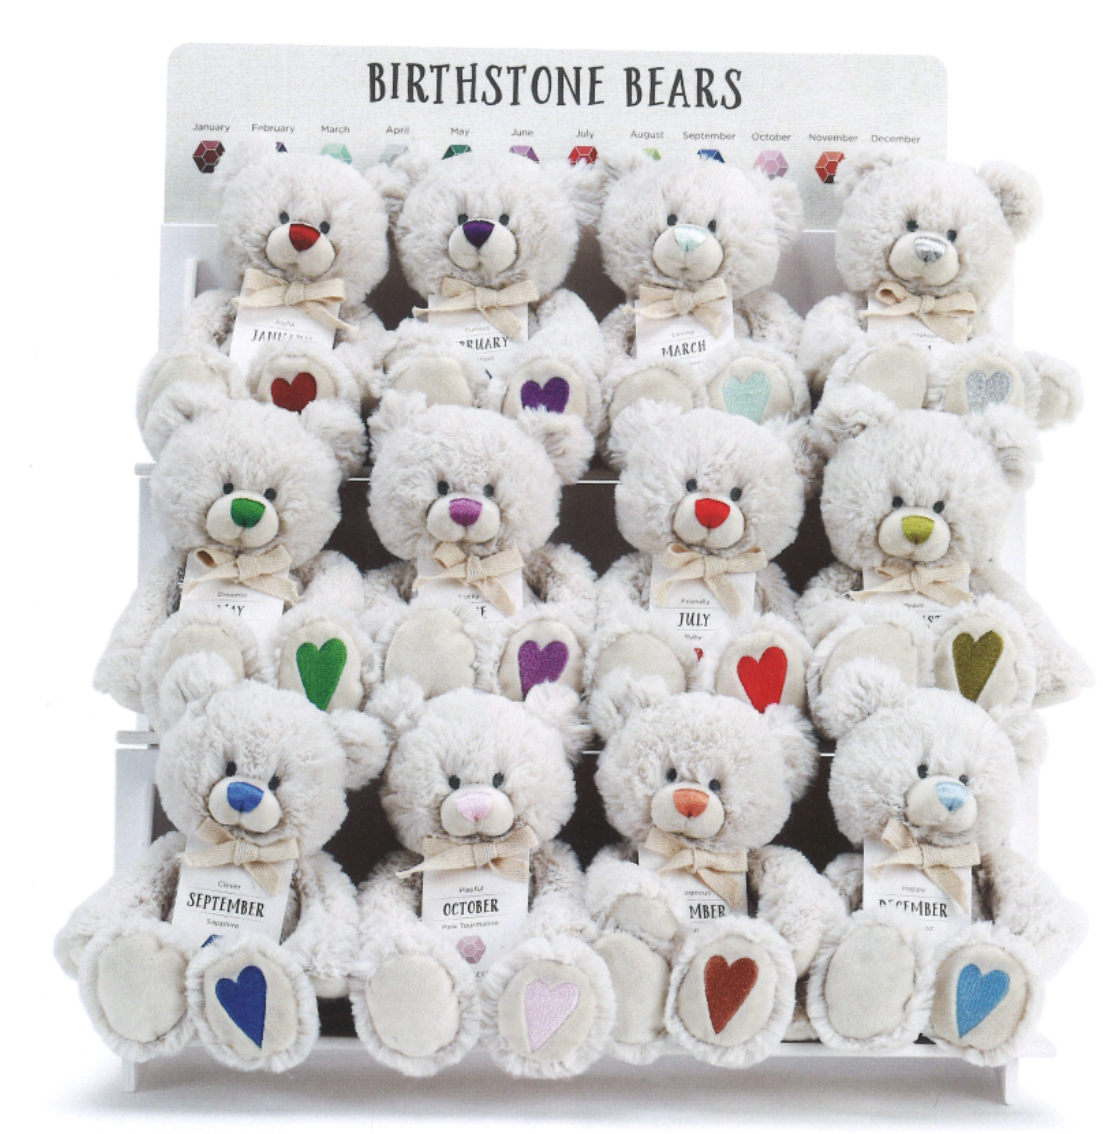 Birthstone Bears